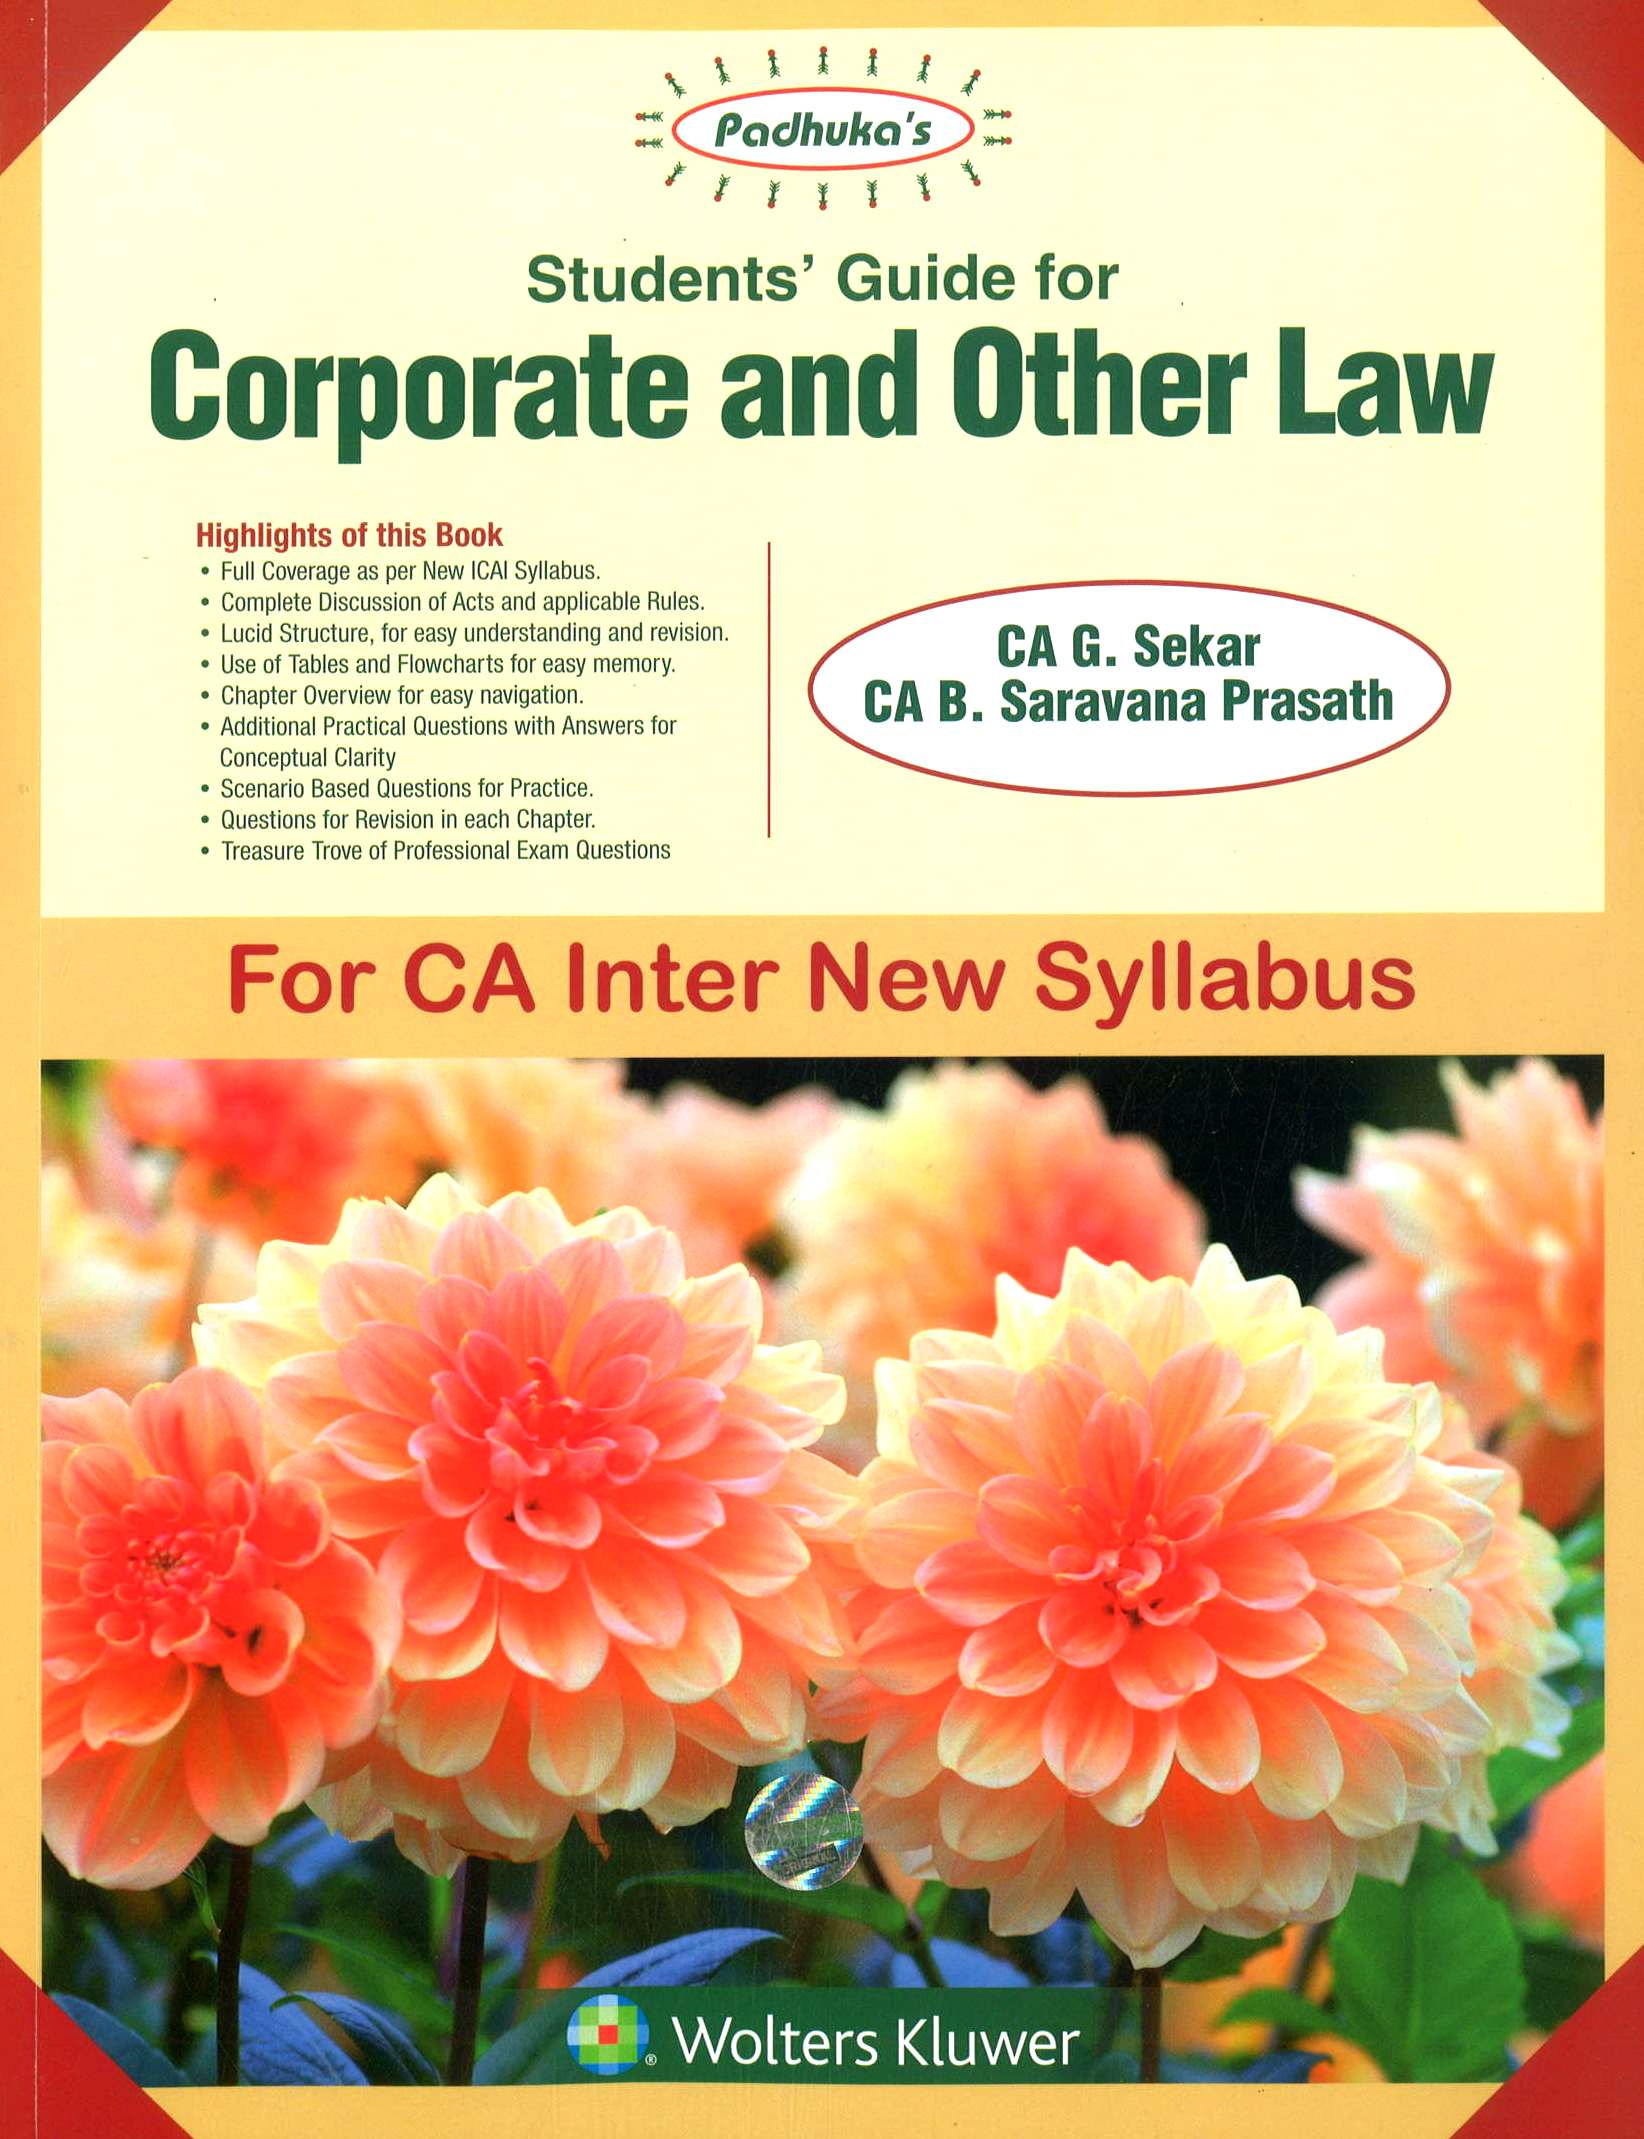 Students' Guide for Corporate and Other Law for CA- Inter (IPCC) By Ca B Saravana Prasath Ca G Sekar New Syllabus Applicable for Nov 2018 Exam